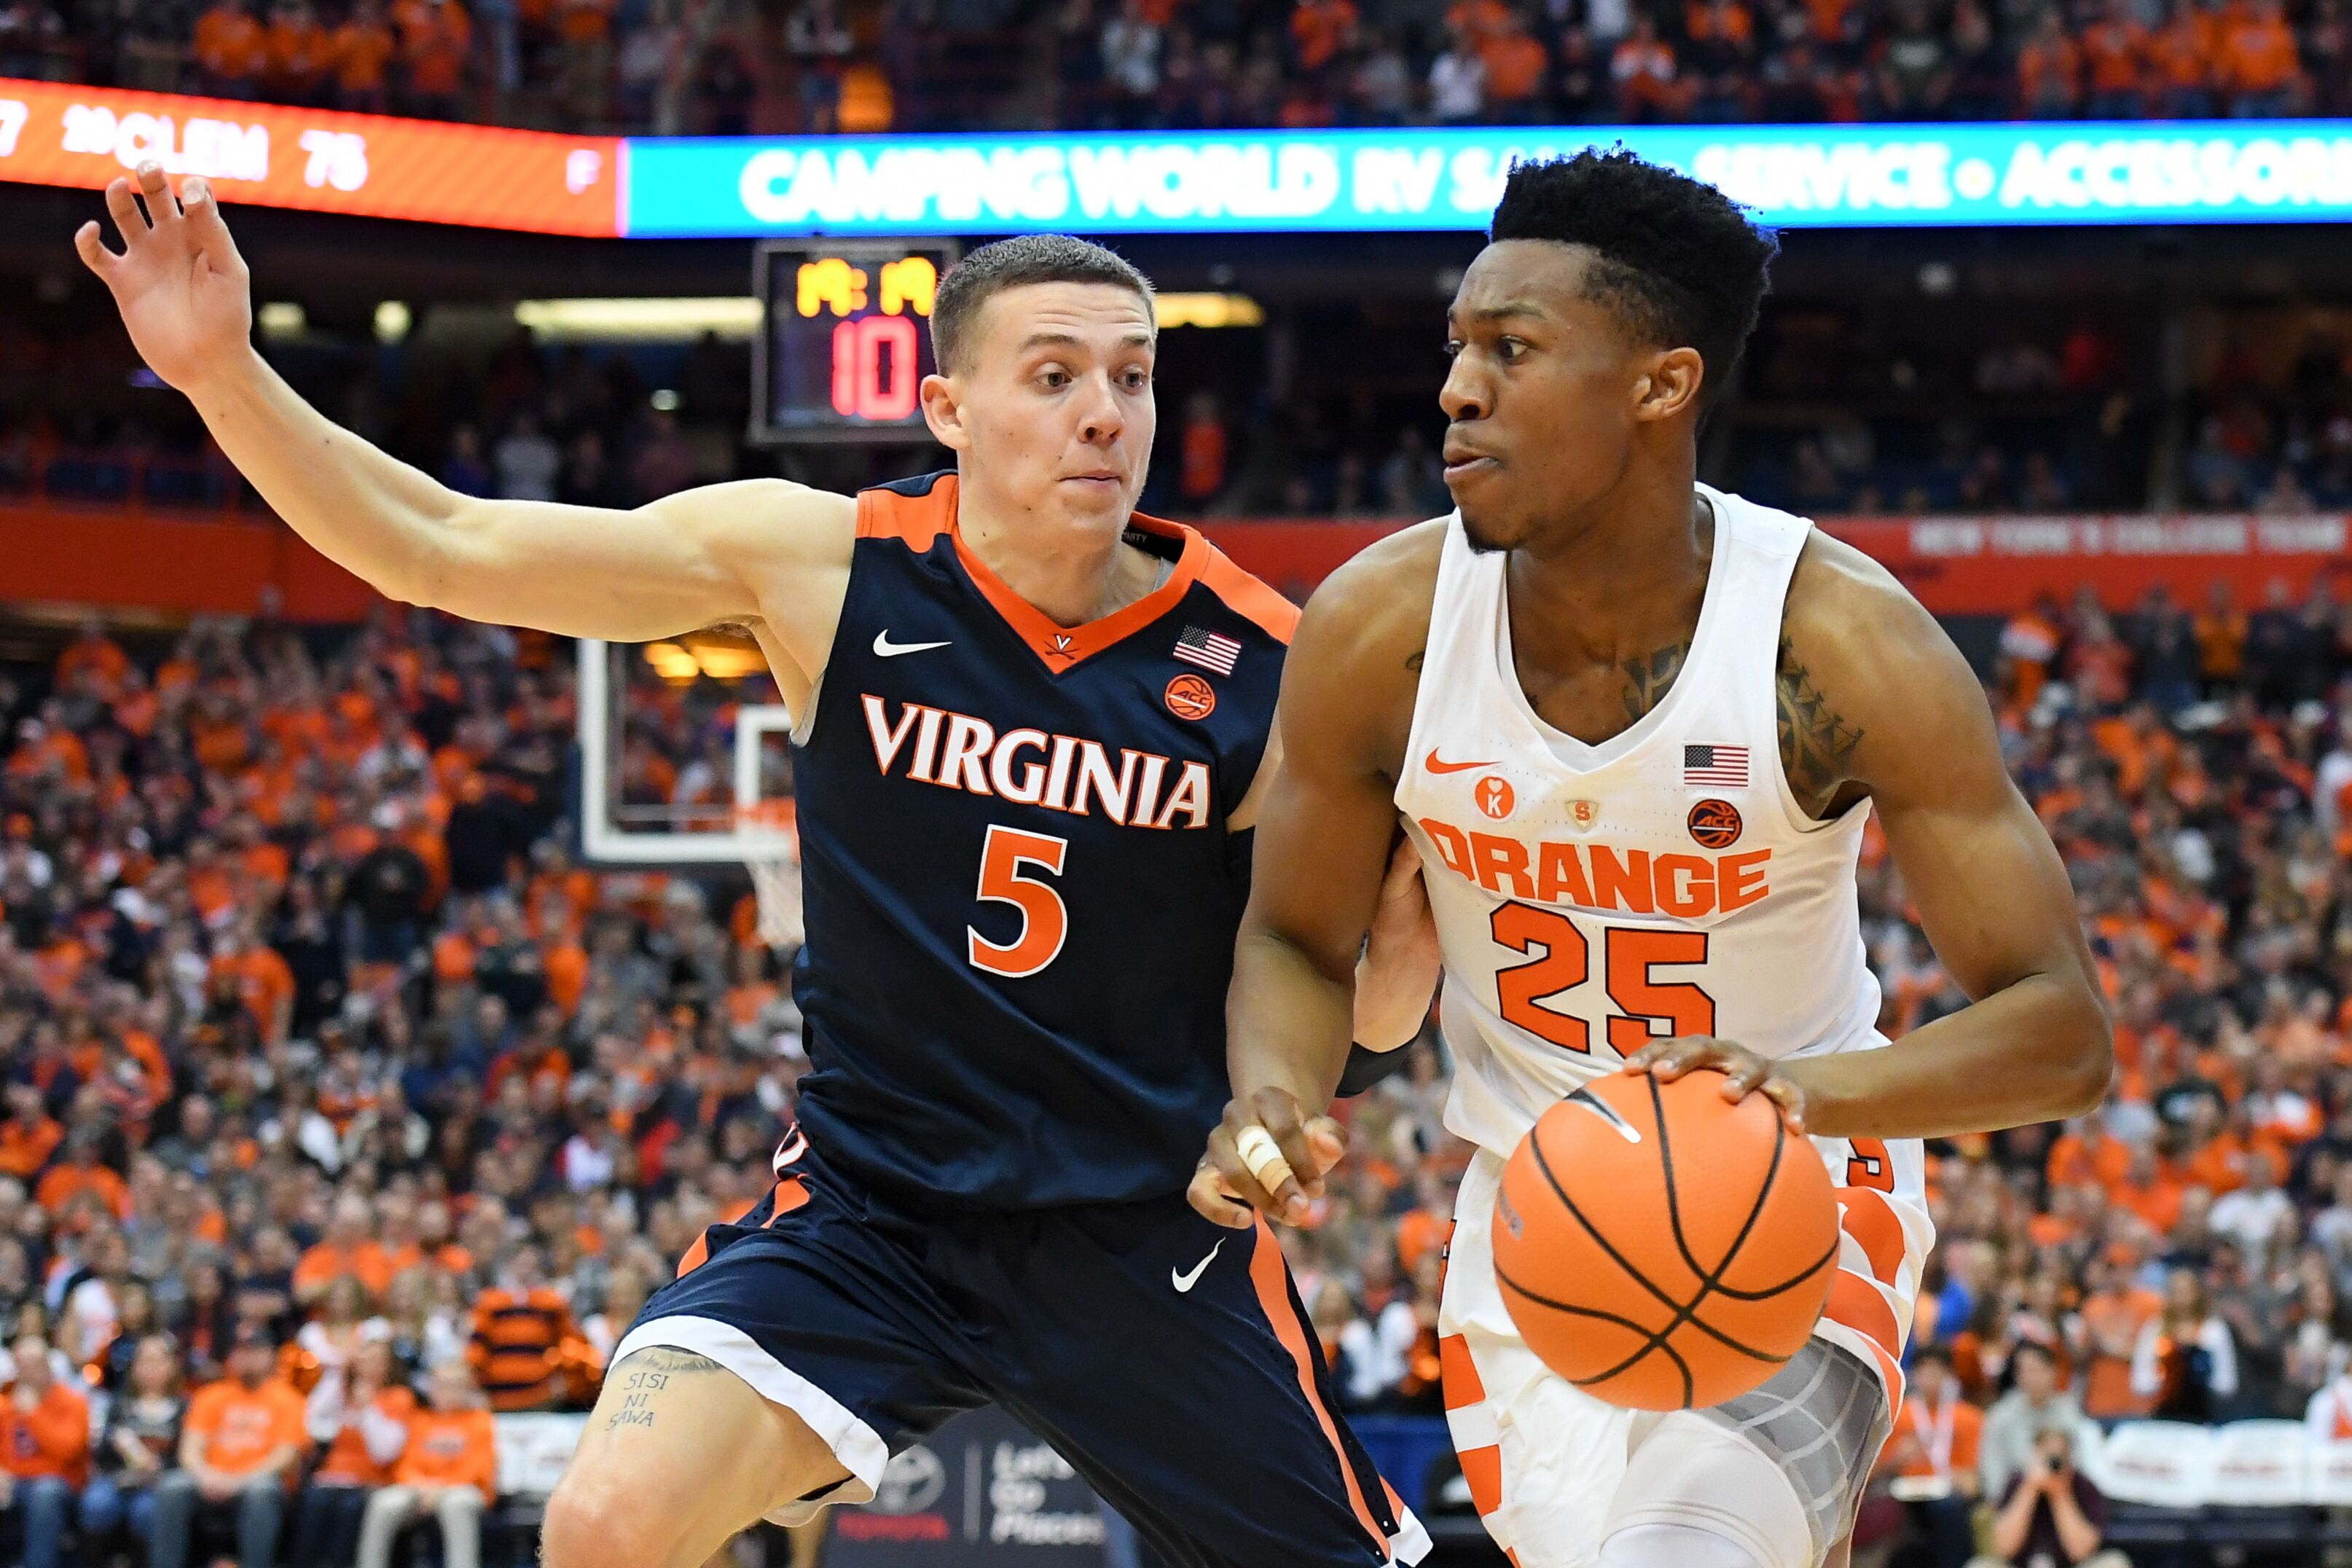 Syracuse Basketball Acc Schedule Released For 2018 19